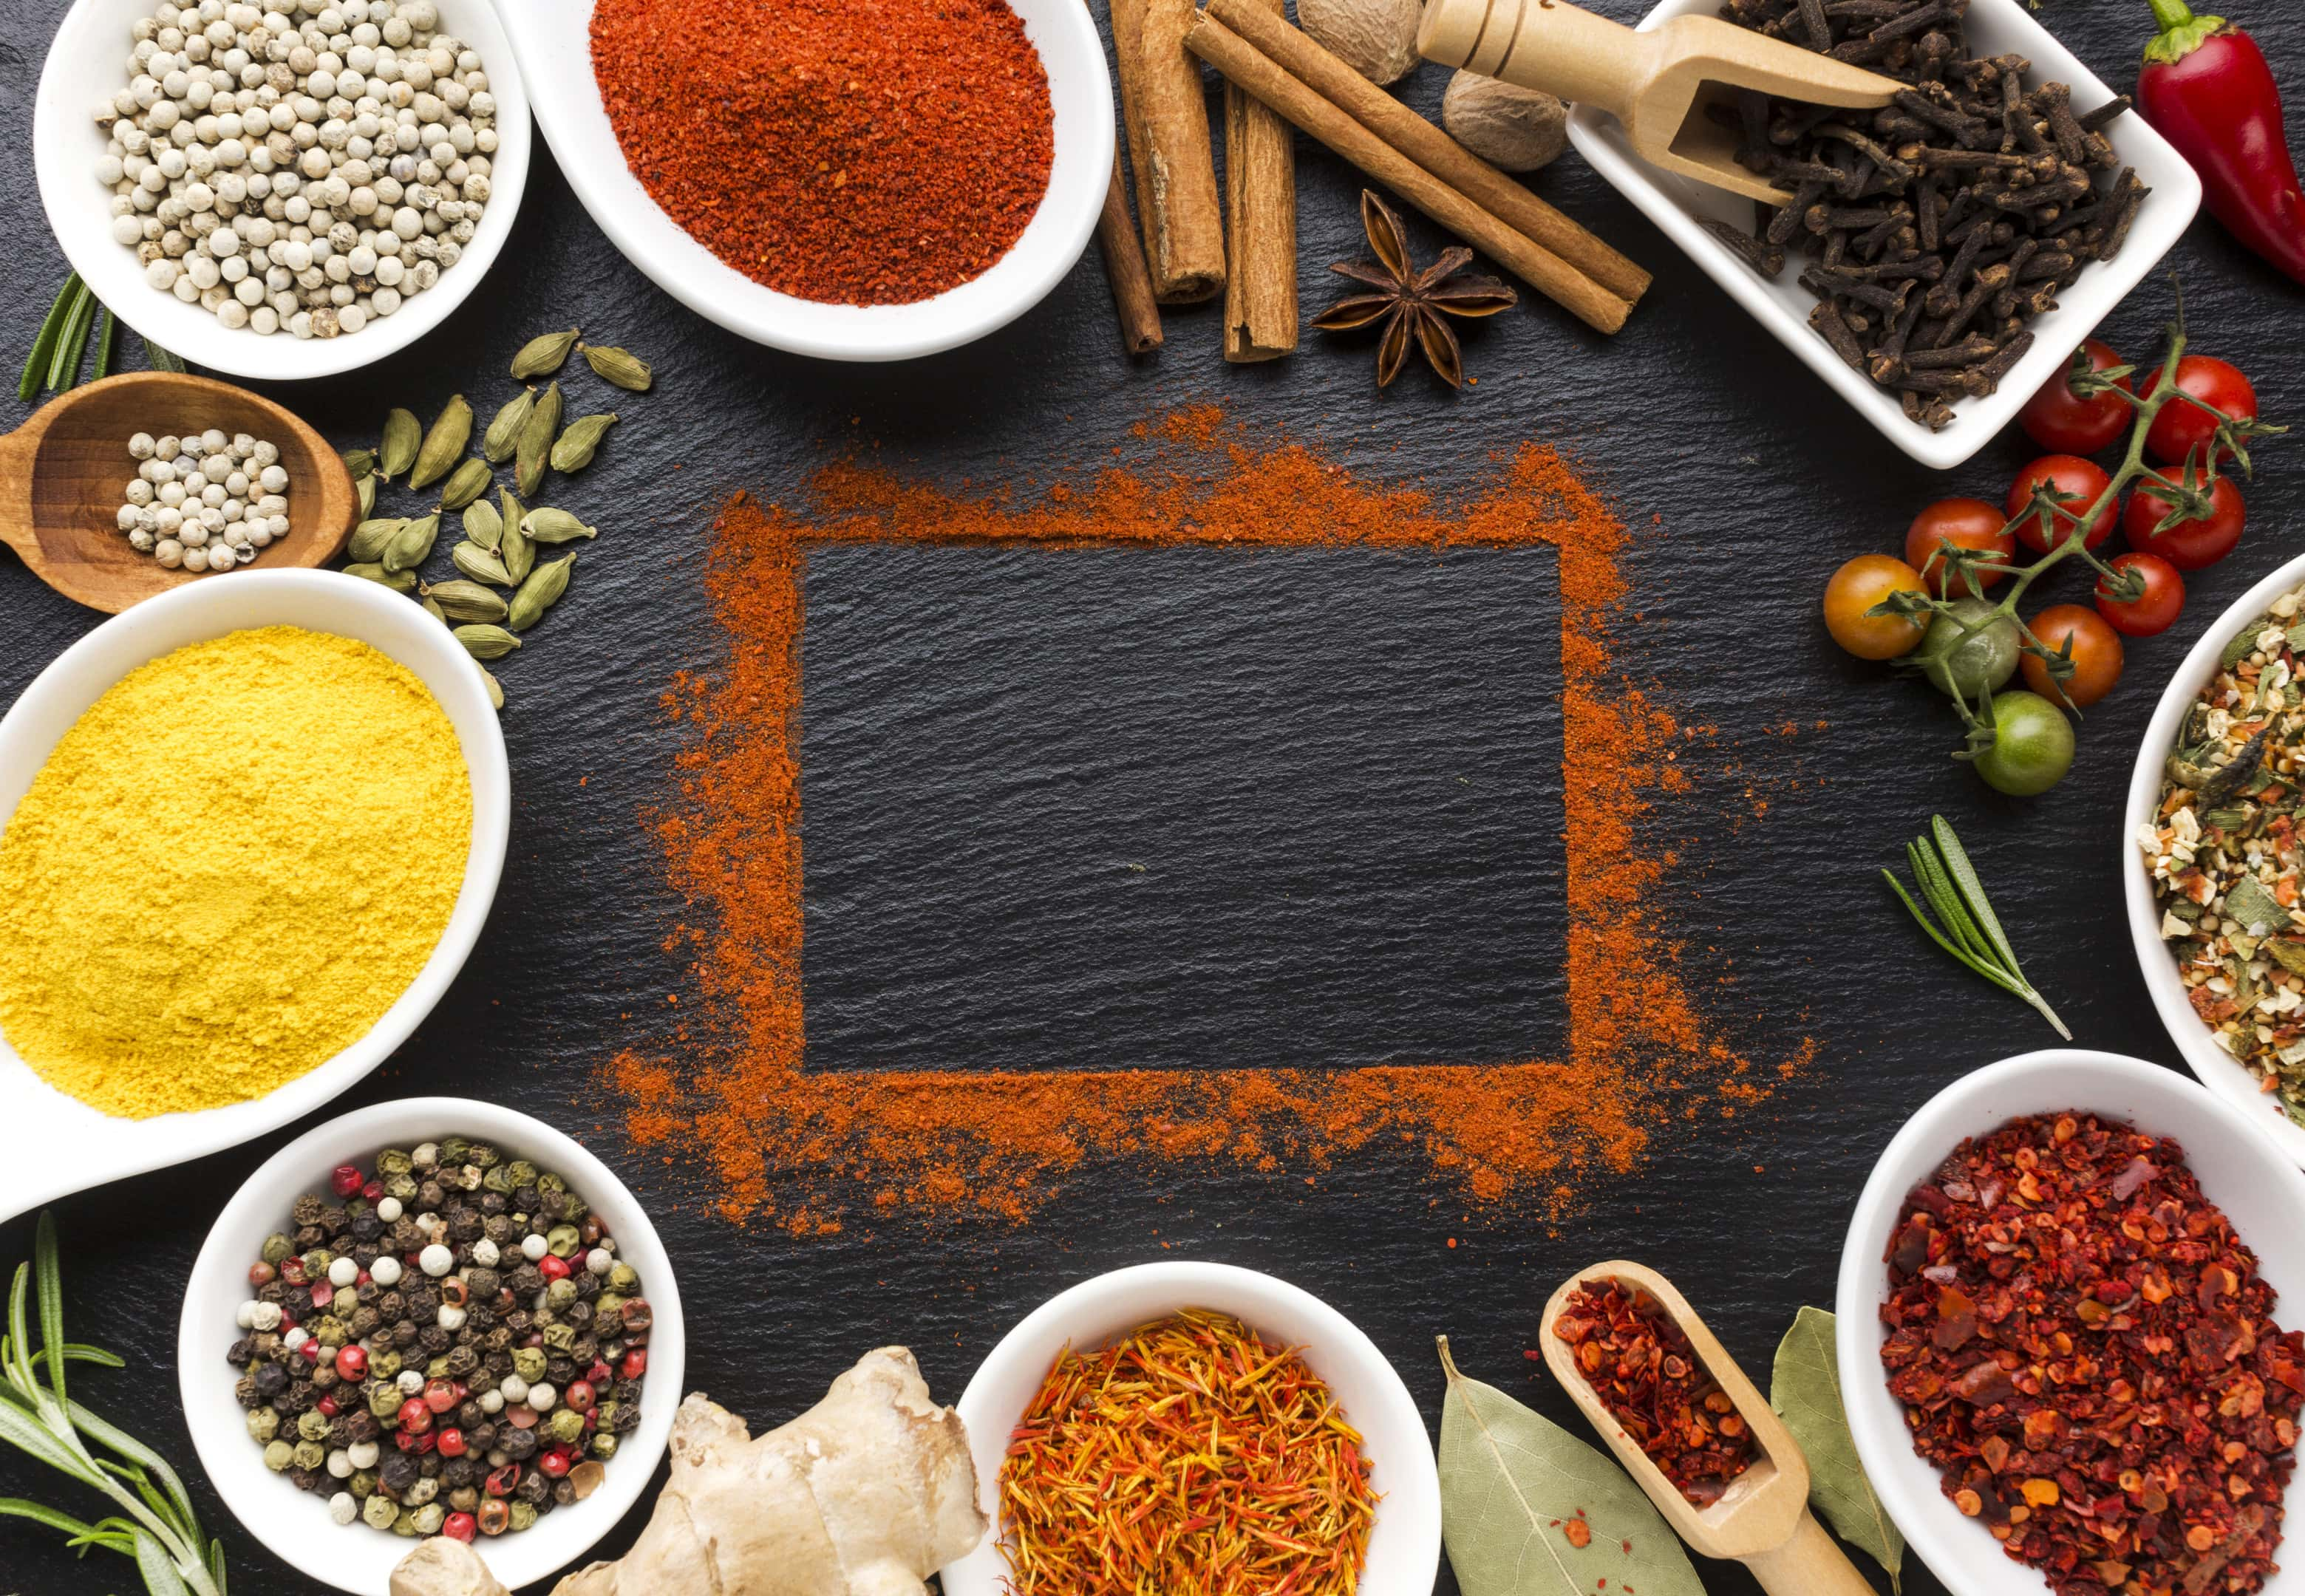 Mixture of spices and powder of spice mixture on table